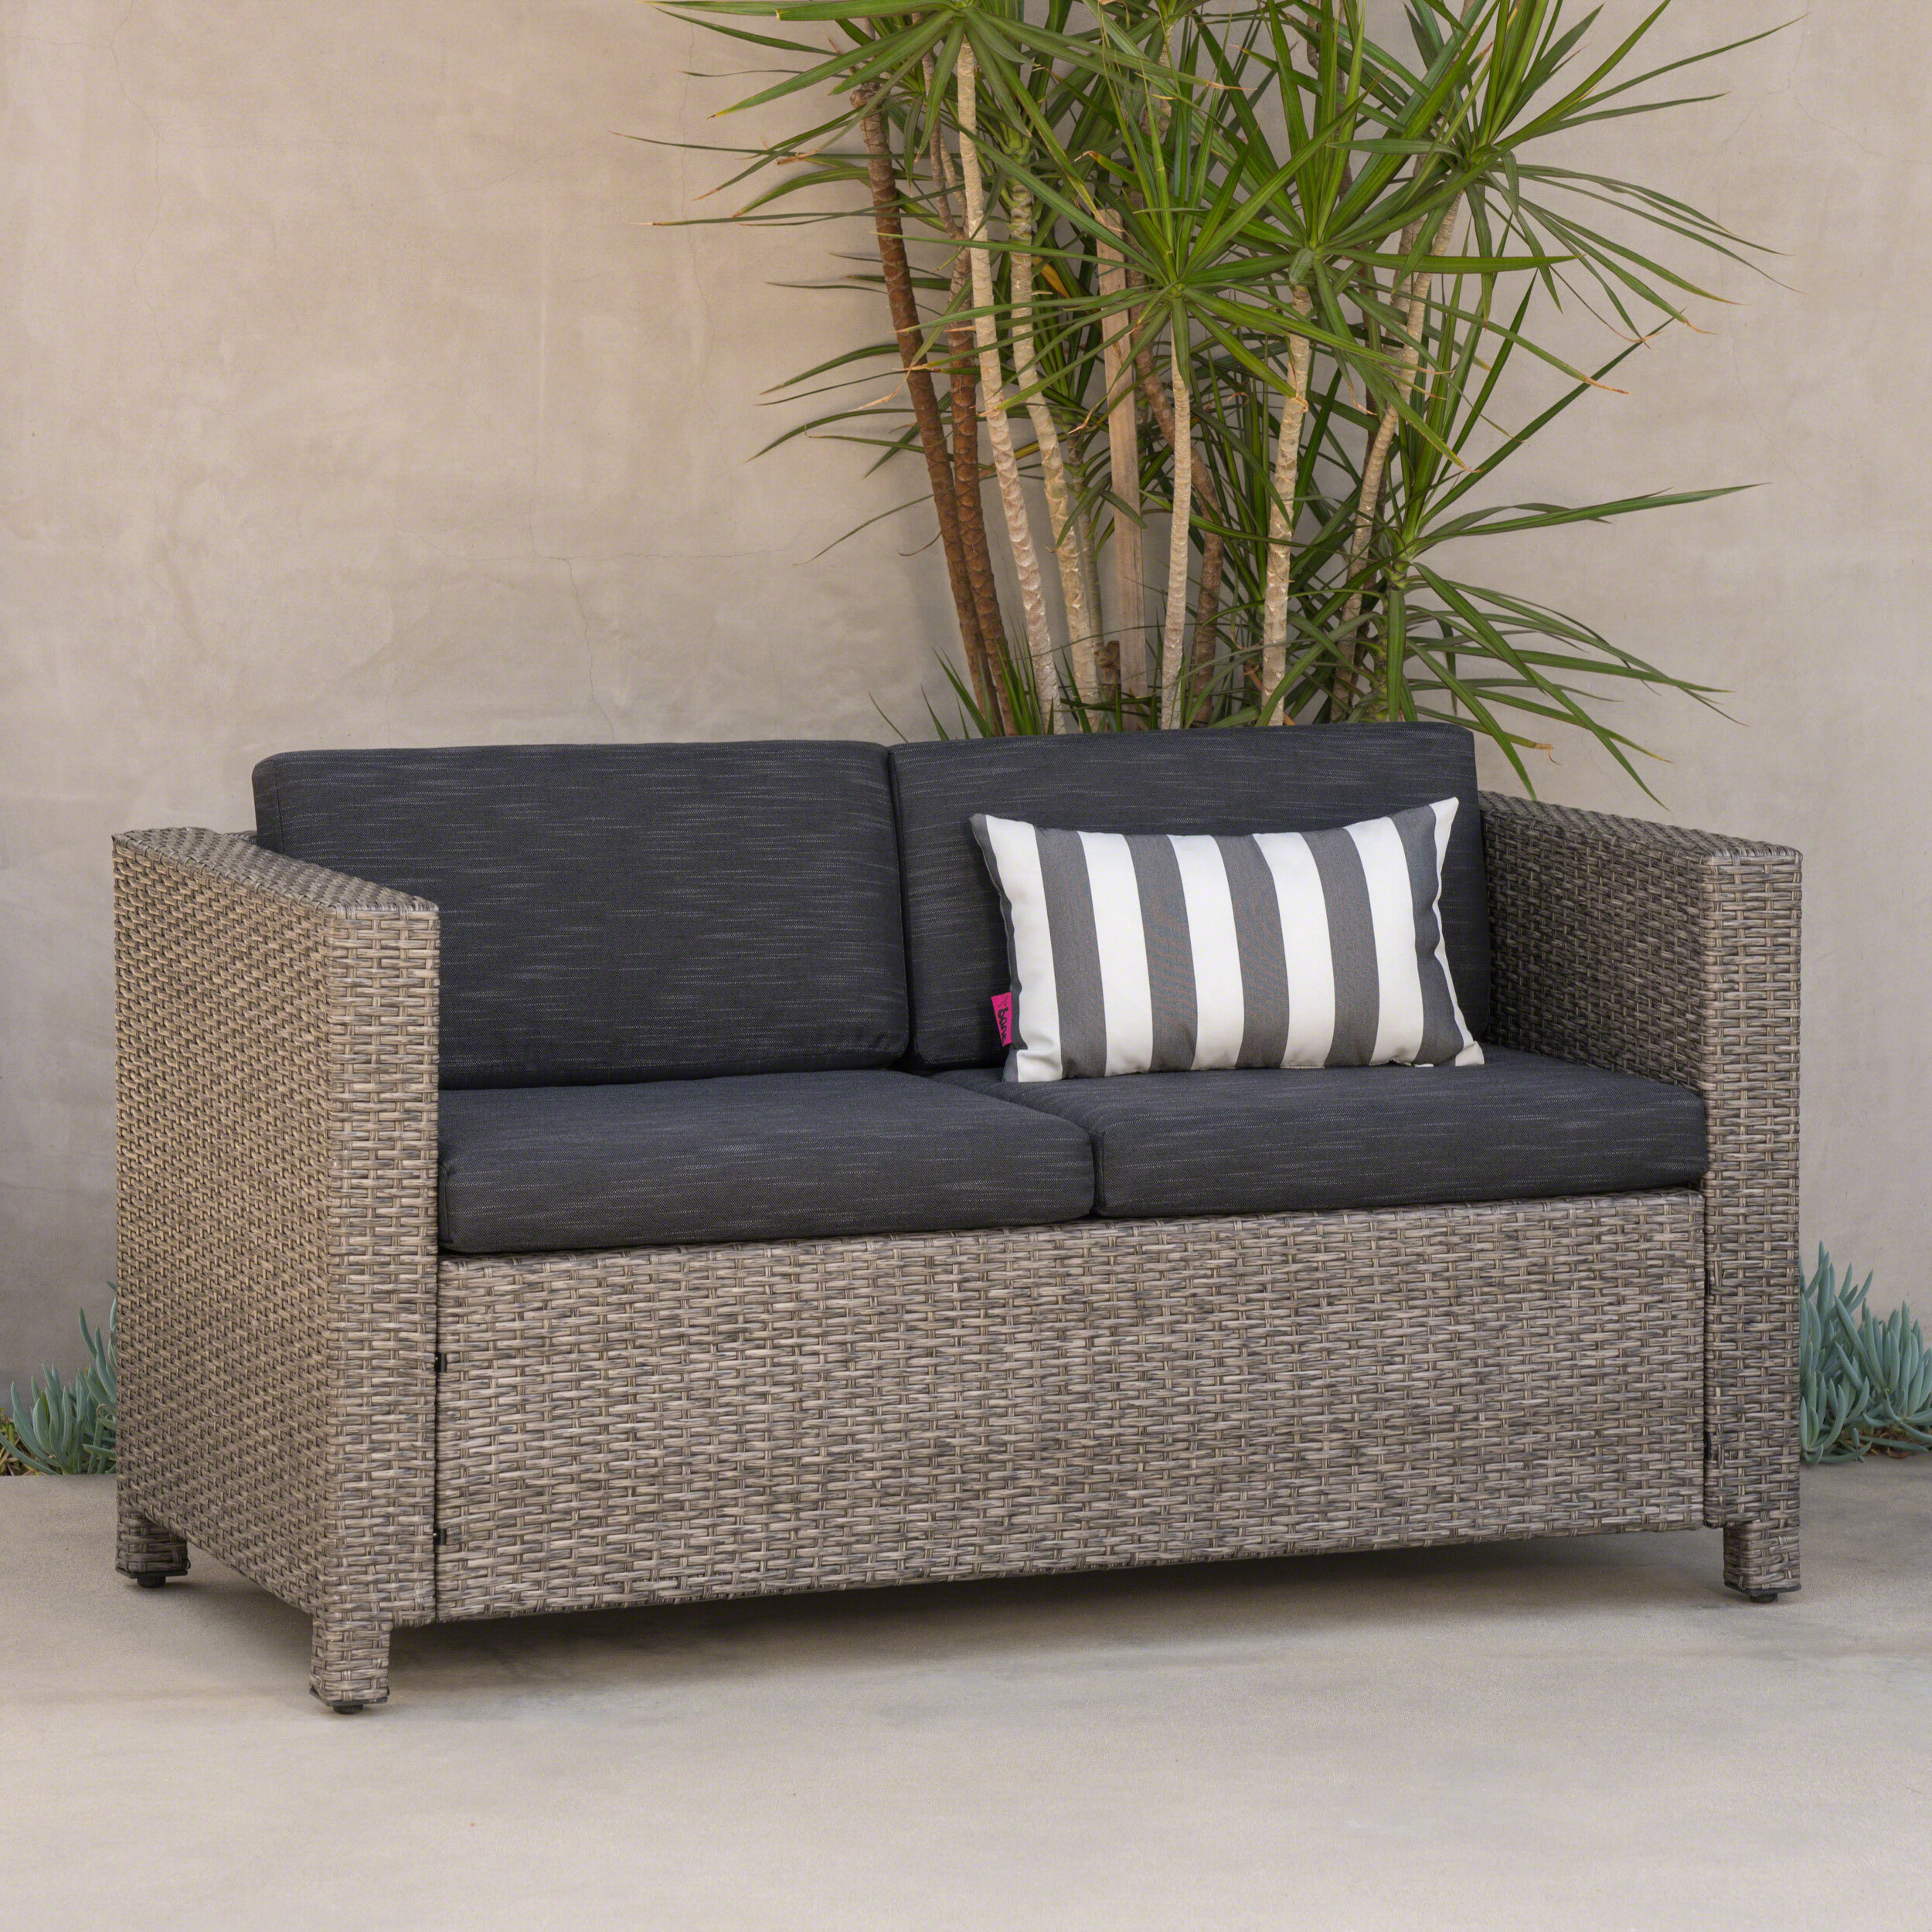 Most Popular Baca Patio Sofas With Cushions Intended For Furst Outdoor Loveseat With Cushions (Gallery 16 of 25)